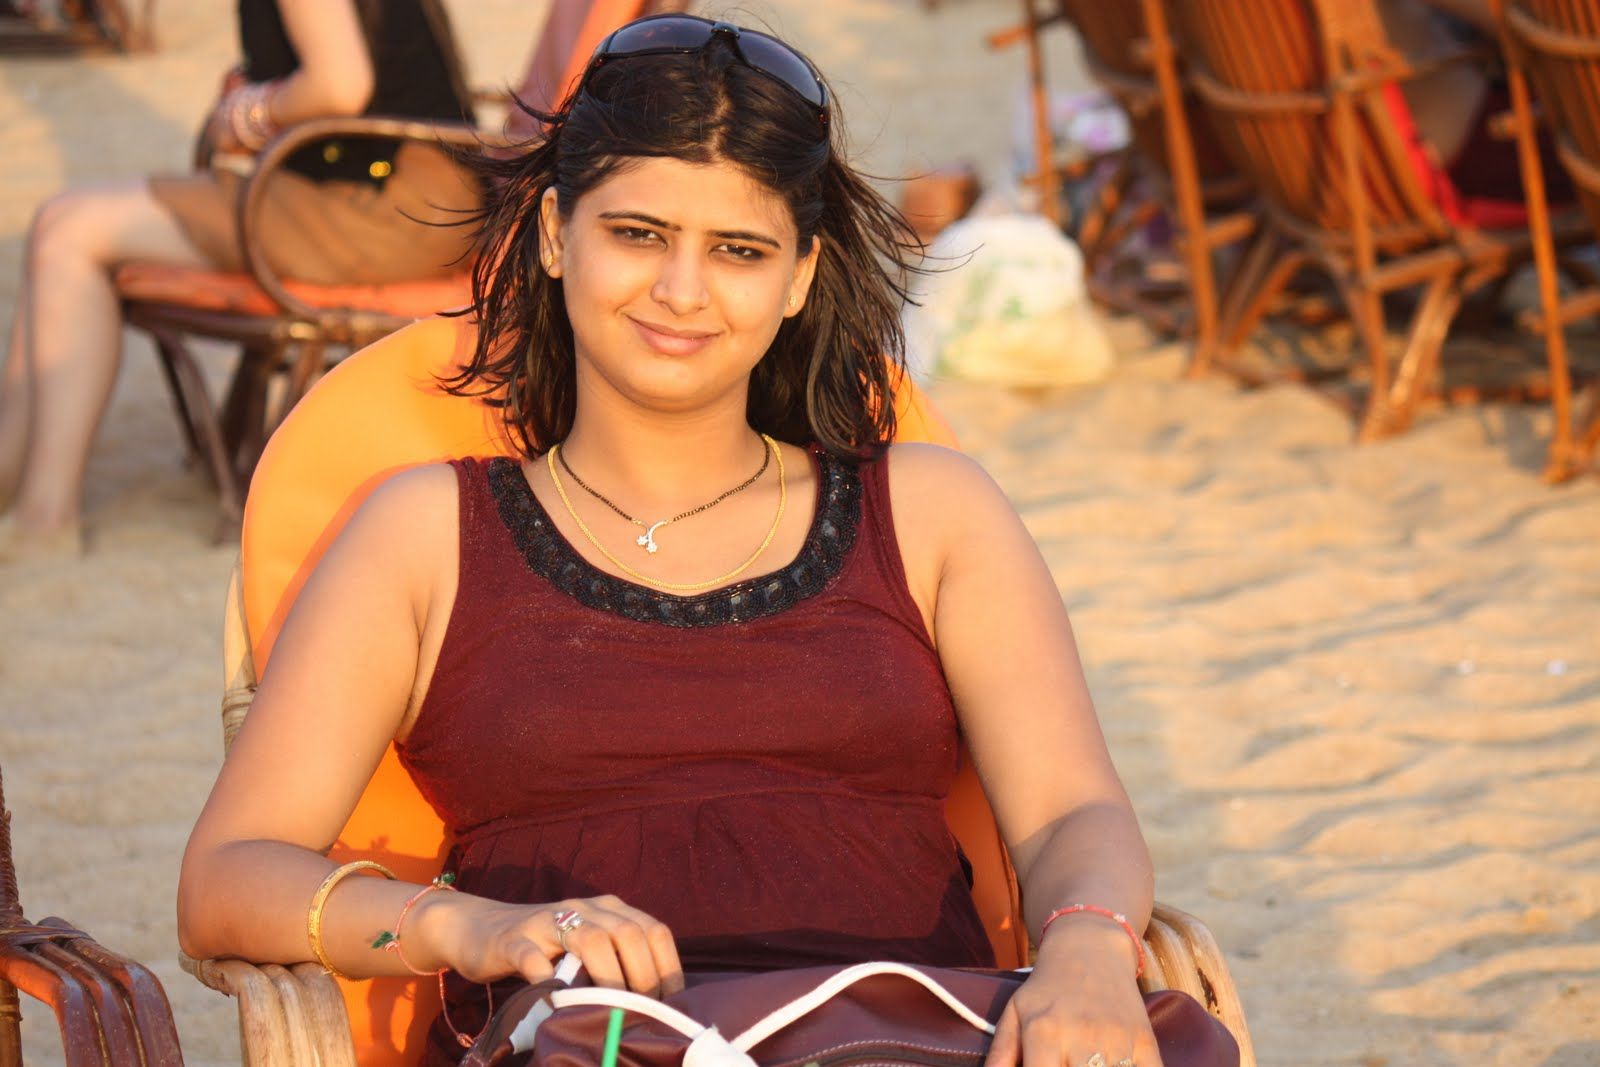 Hot Indian Girl Pictures At Goa Beach-7375